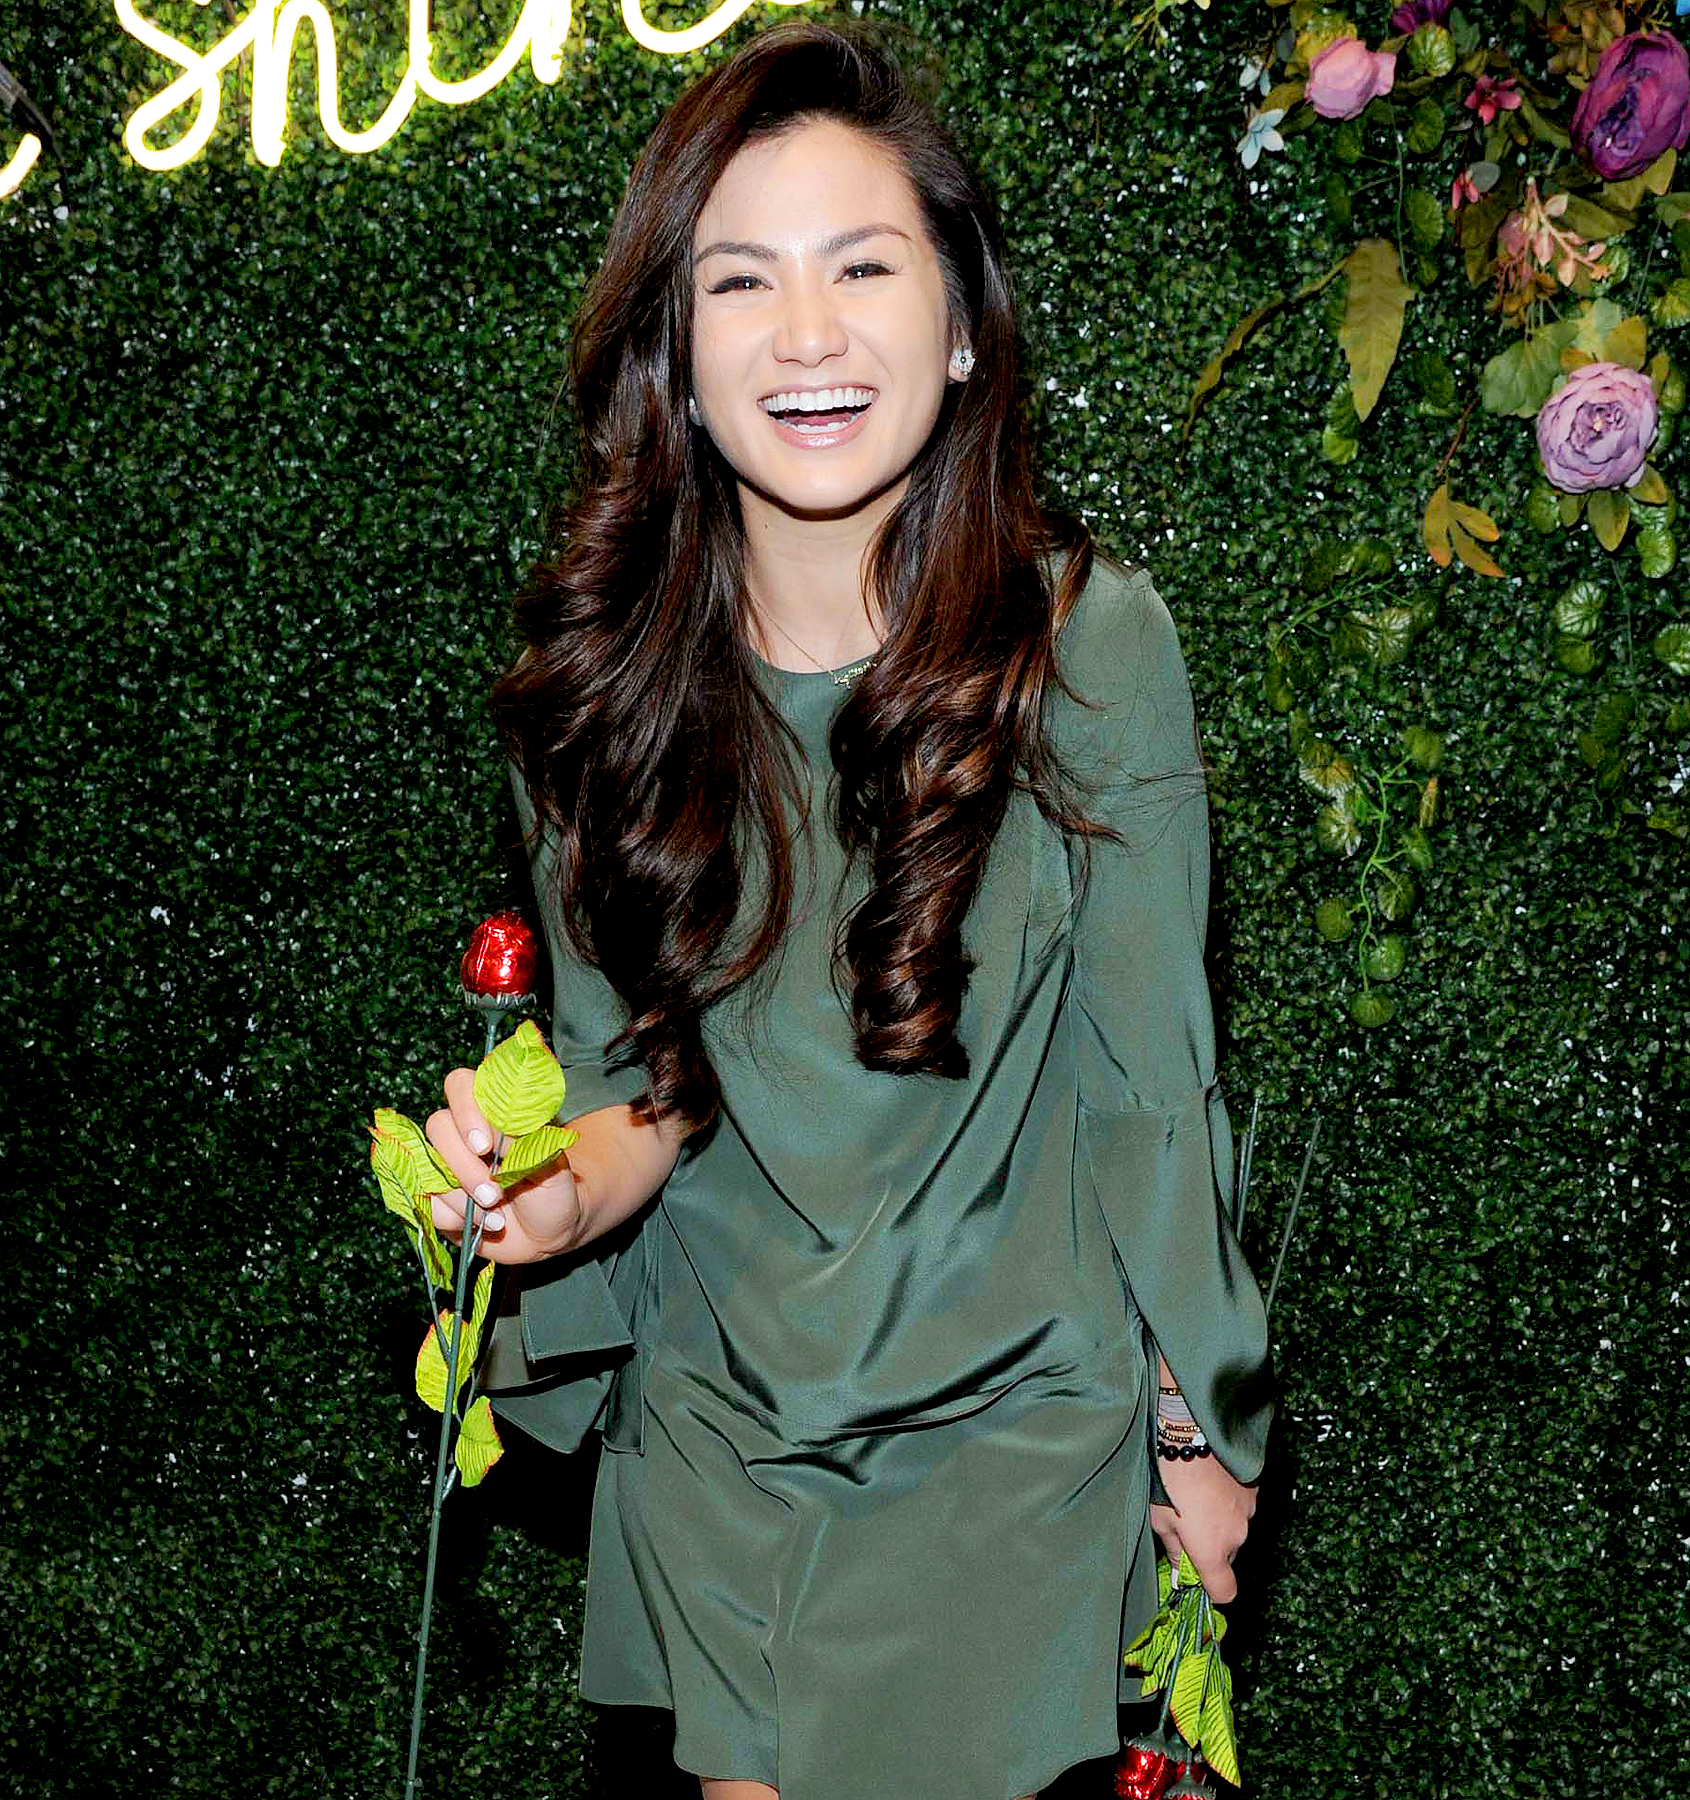 Caila Quinn attends Aerie Celebrates the All Woman Campaign at the Aerie Spring Street Pop Up Shop on February 6, 2017.